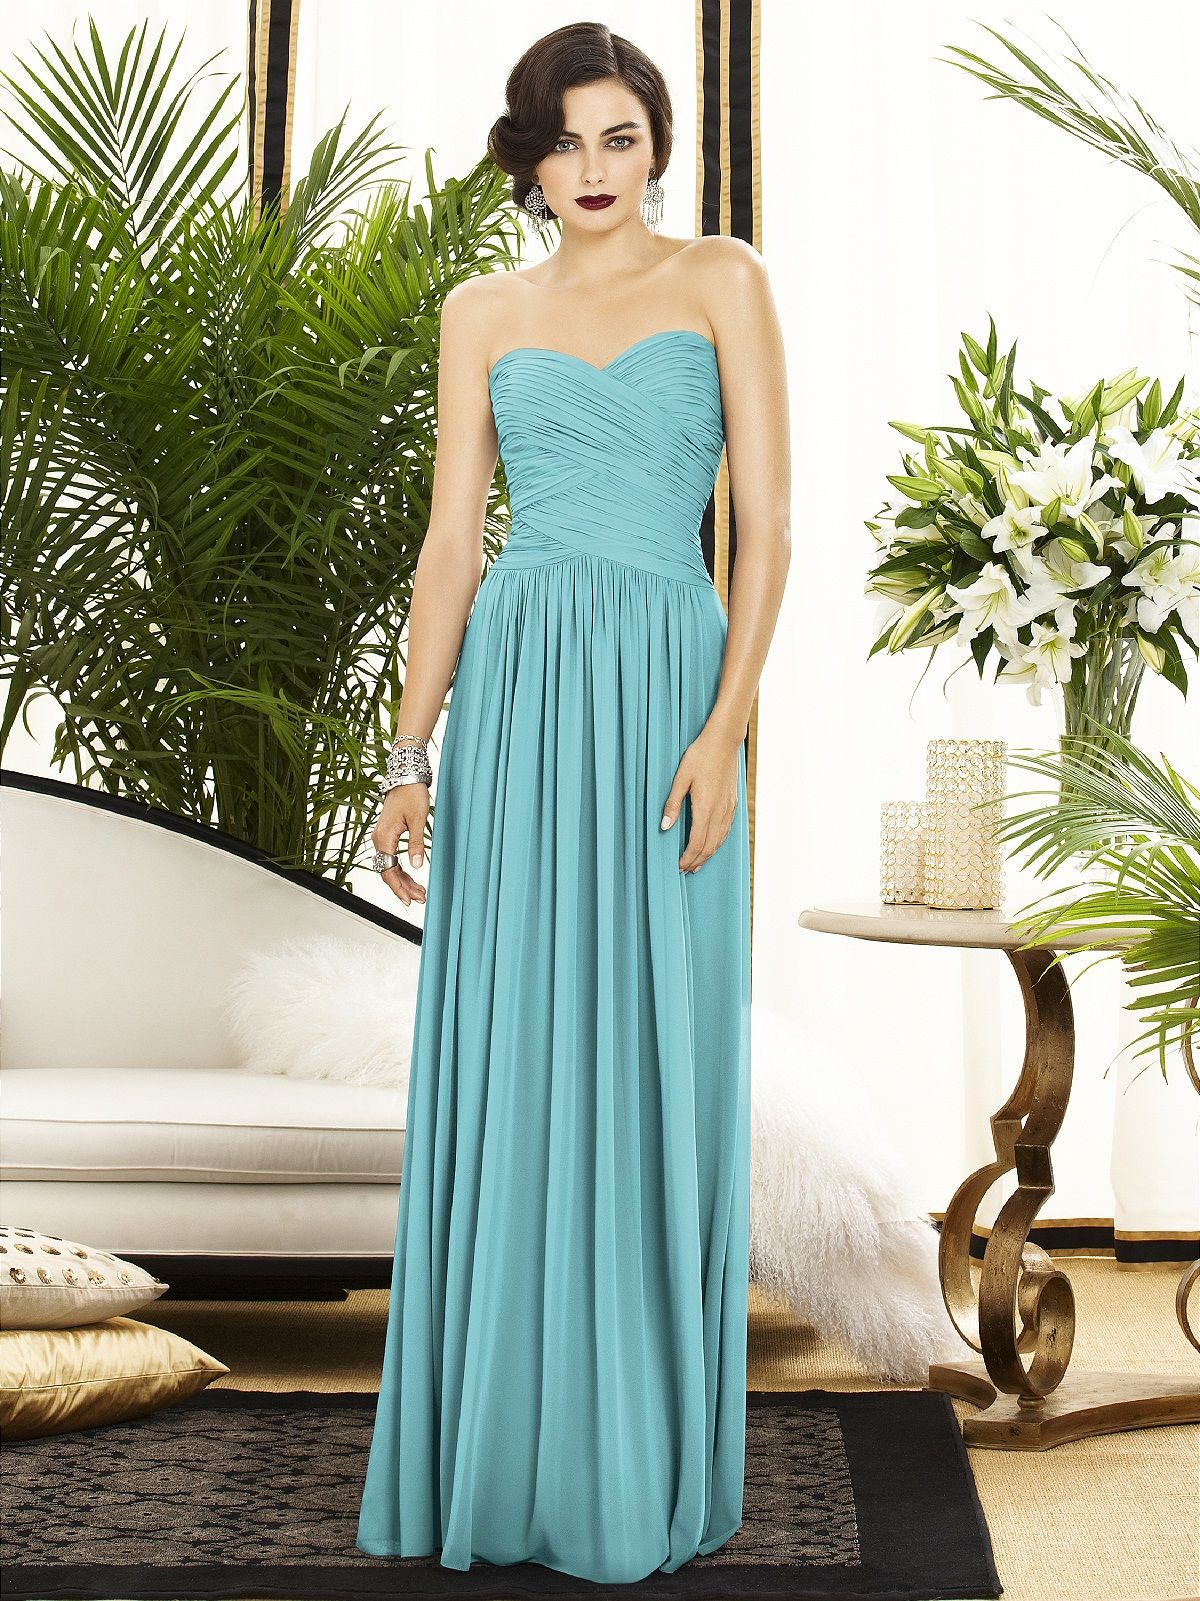 Dessy collection style turquoise bridesmaid dresses wedding